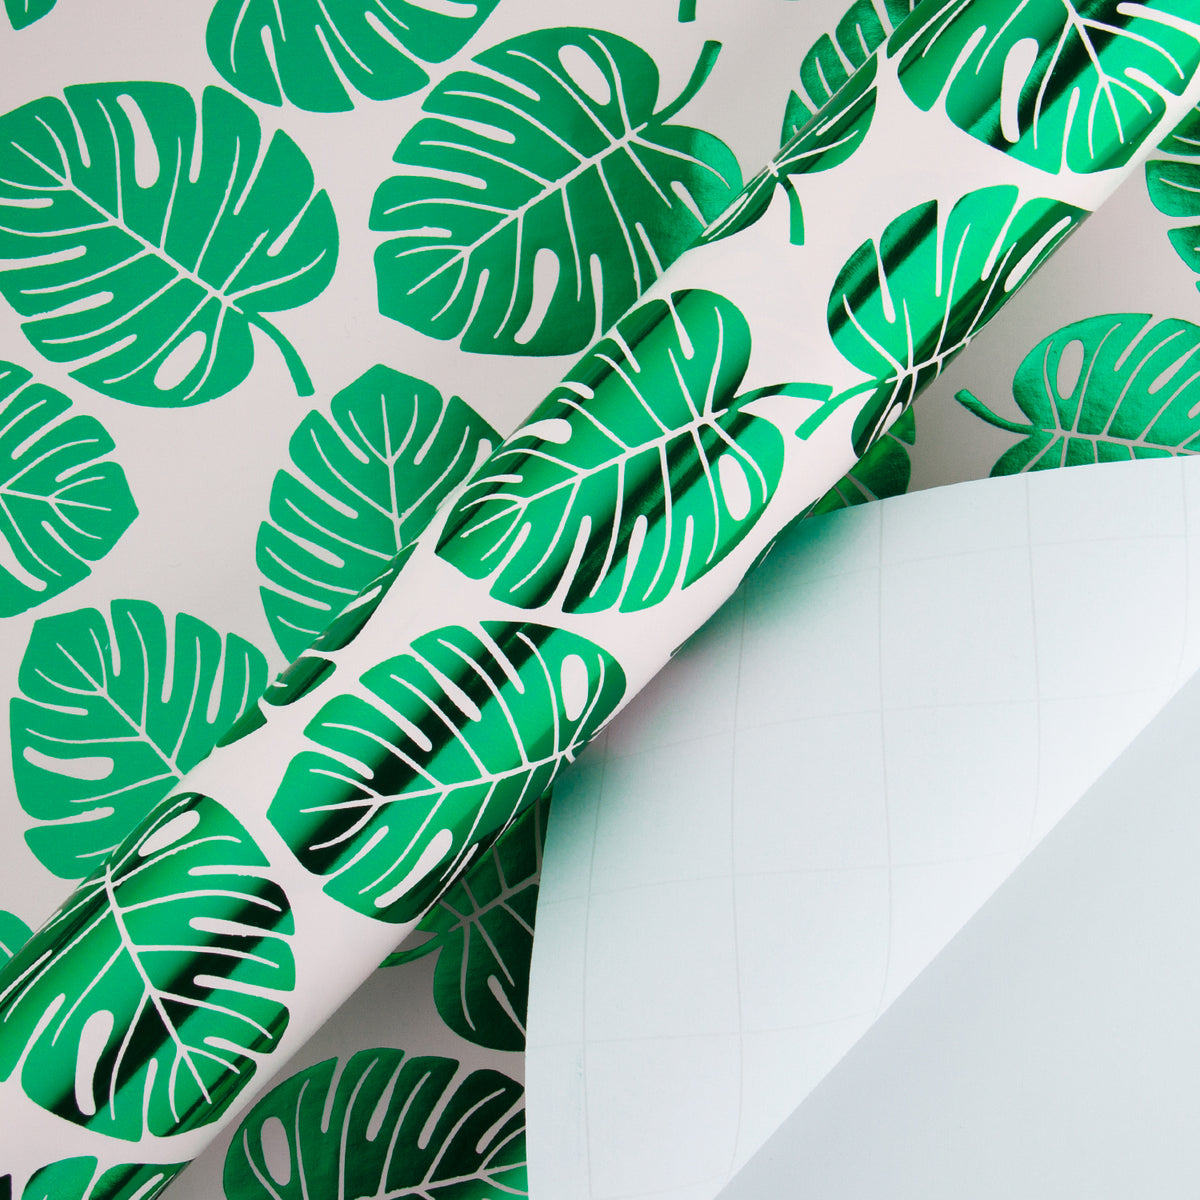 Wrapaholic-Green-Foil-Tropical-Palm-Leaves-Gift -Wrapping-Paper-Roll-3